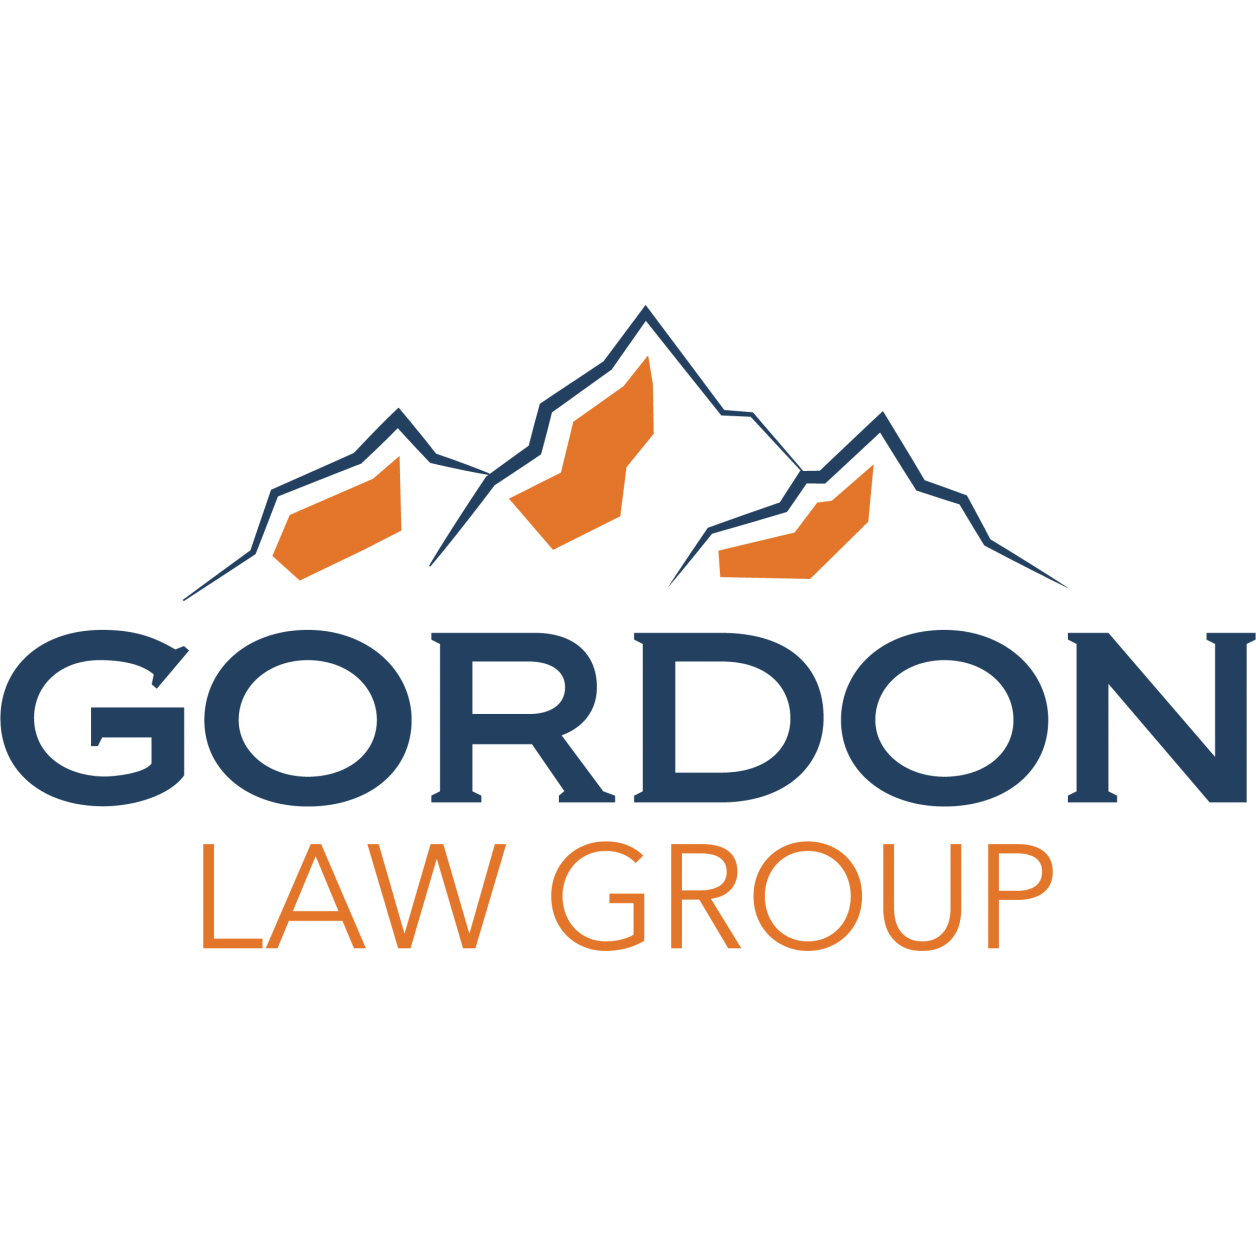 Heber Lawyers - Gordon Law Group